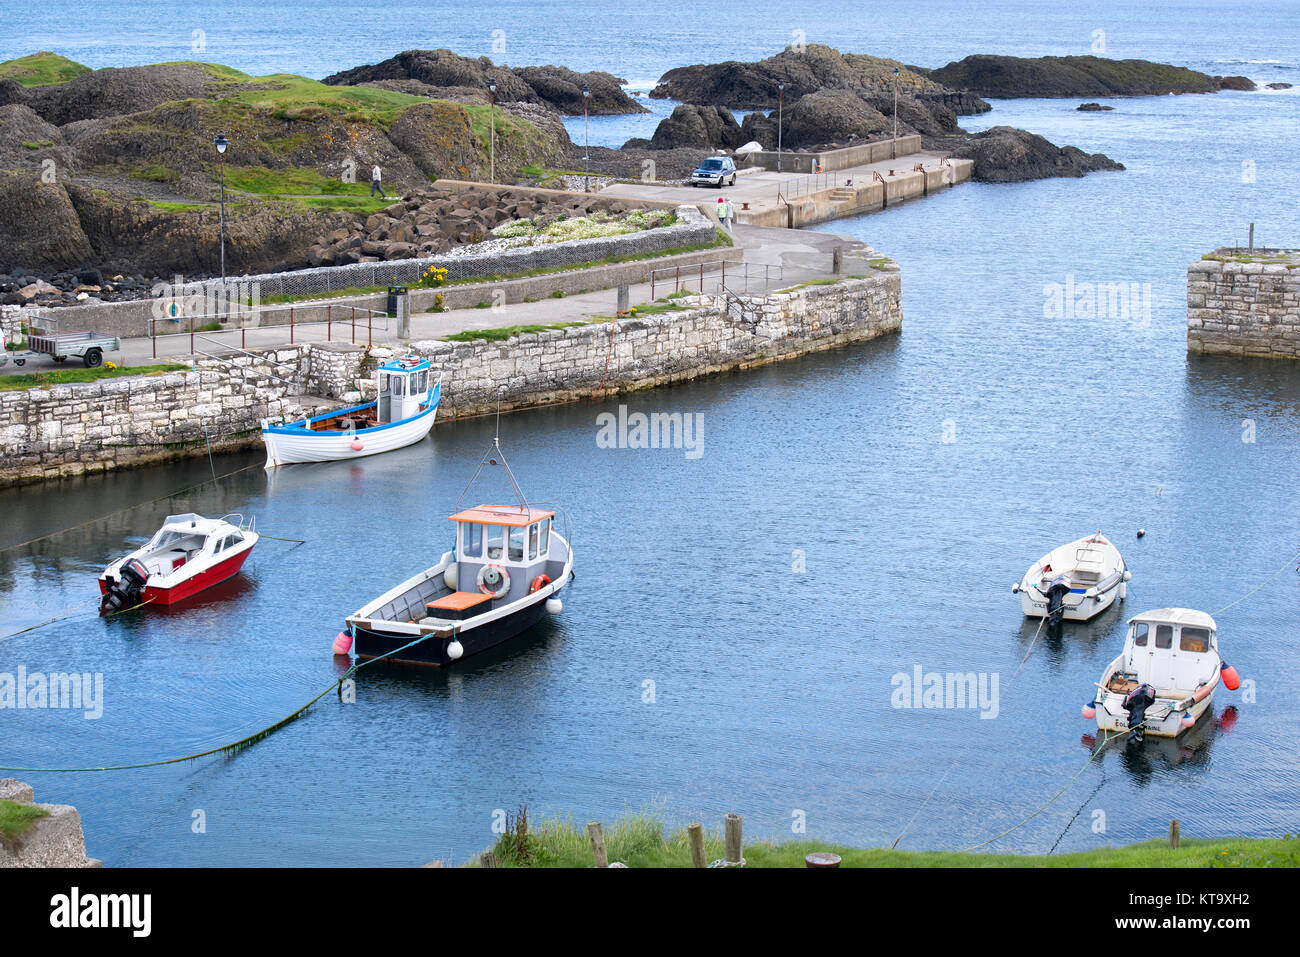 Boats in Ballintoy Harbour, County Antrim, Northern Ireland - Stock Image